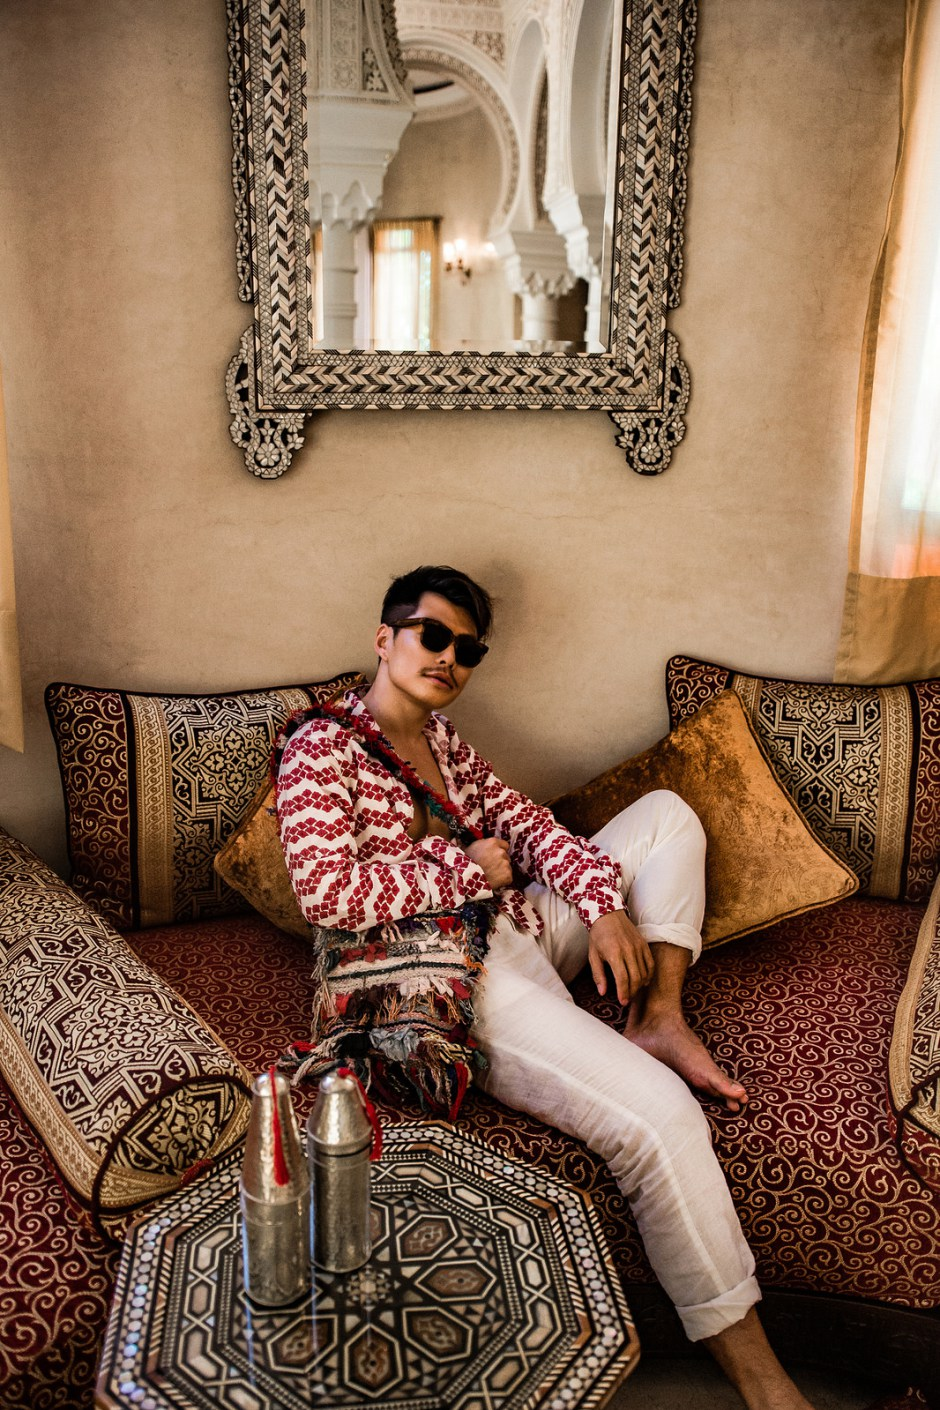 www.JadoreLeDecor.com | It's Man Spaces Week on J'adore le Decor! Today we take a closer look at one of the most intriguing luxury men's fashion, travel and interiors feed on Instagram - Bloggers Boyfriend. | Masucline Interiors | Men's Fashion